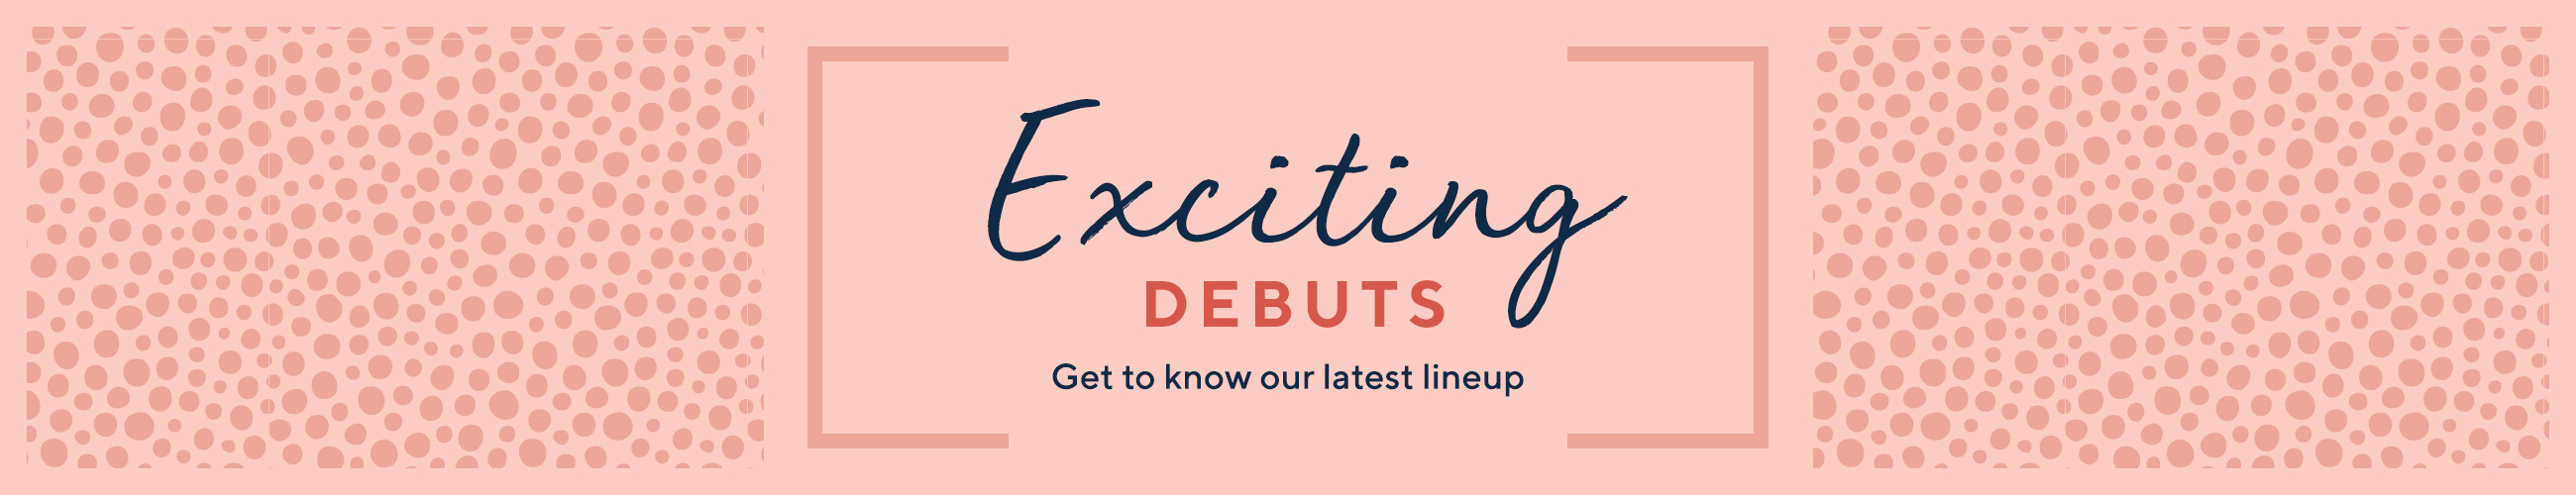 Exciting Debuts  Get to know our latest lineup